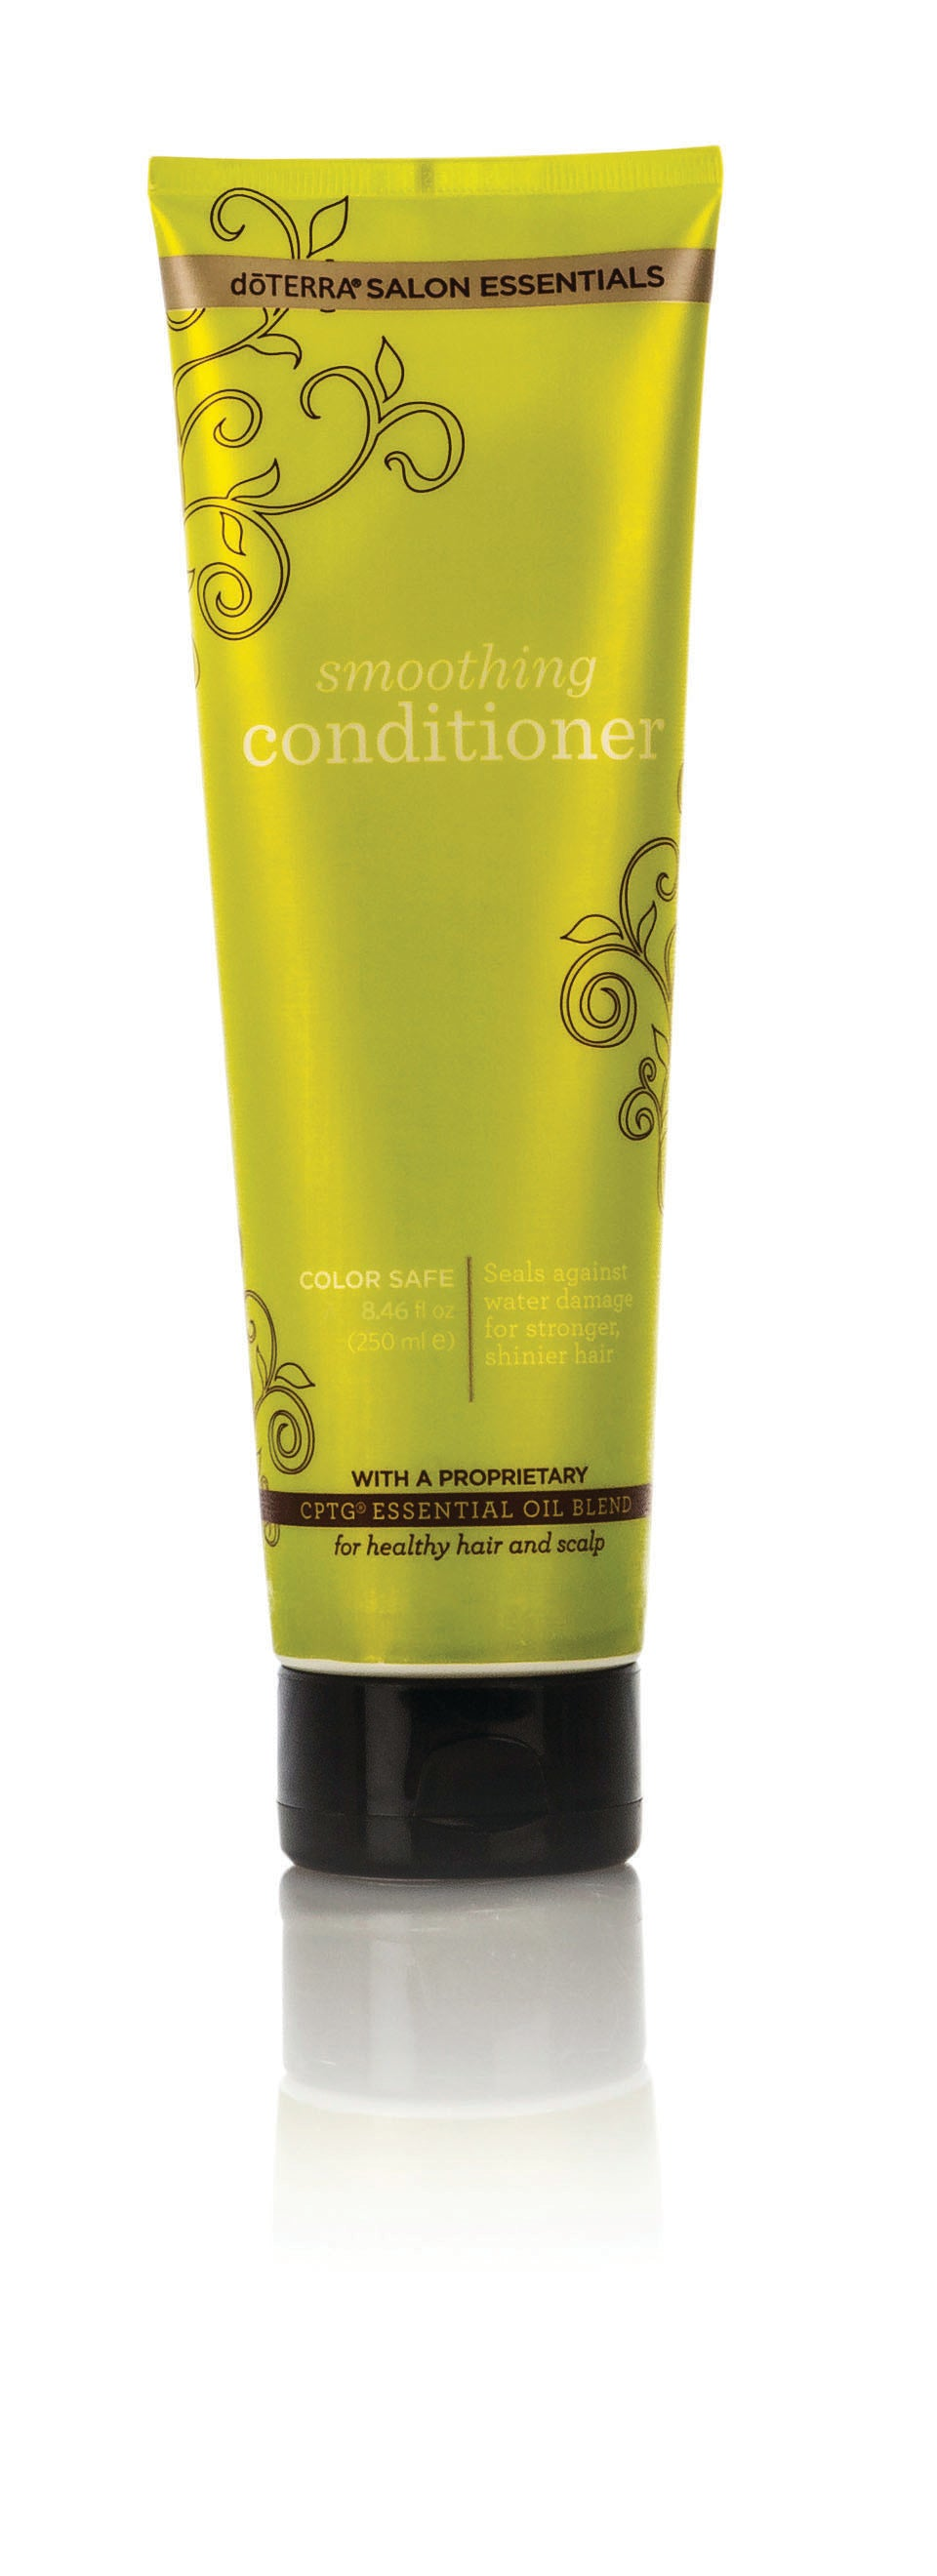 dōTERRA Salon Essentials™ Smoothing Conditioner